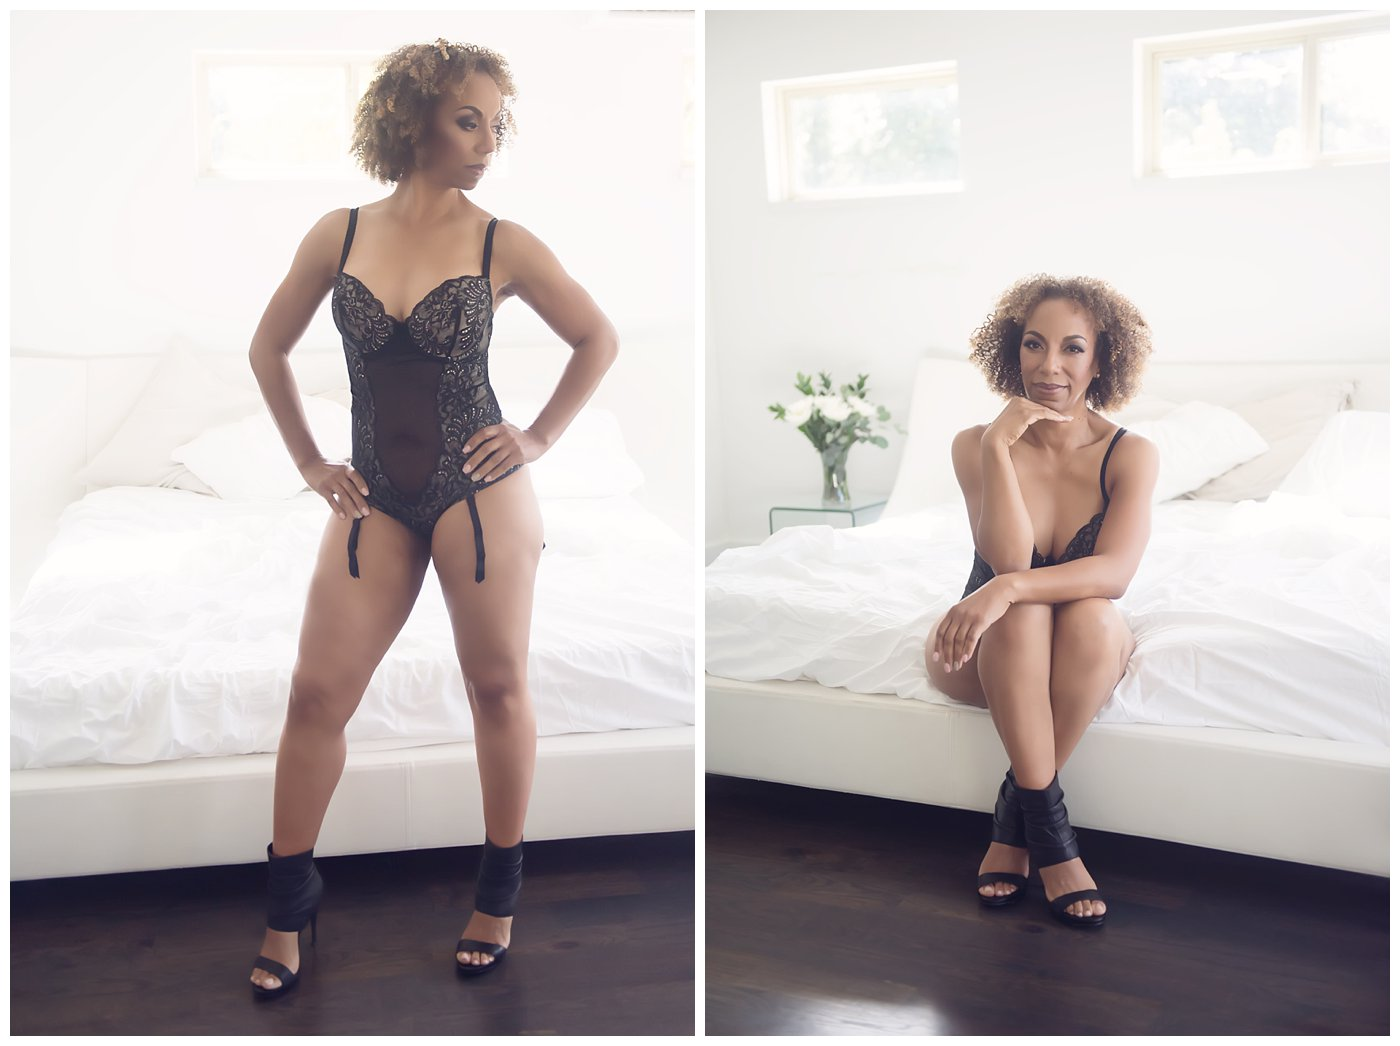 http://www.boudoirwithmary.com/wp-content/uploads/2017/11/2017-11-09_0007.jpg